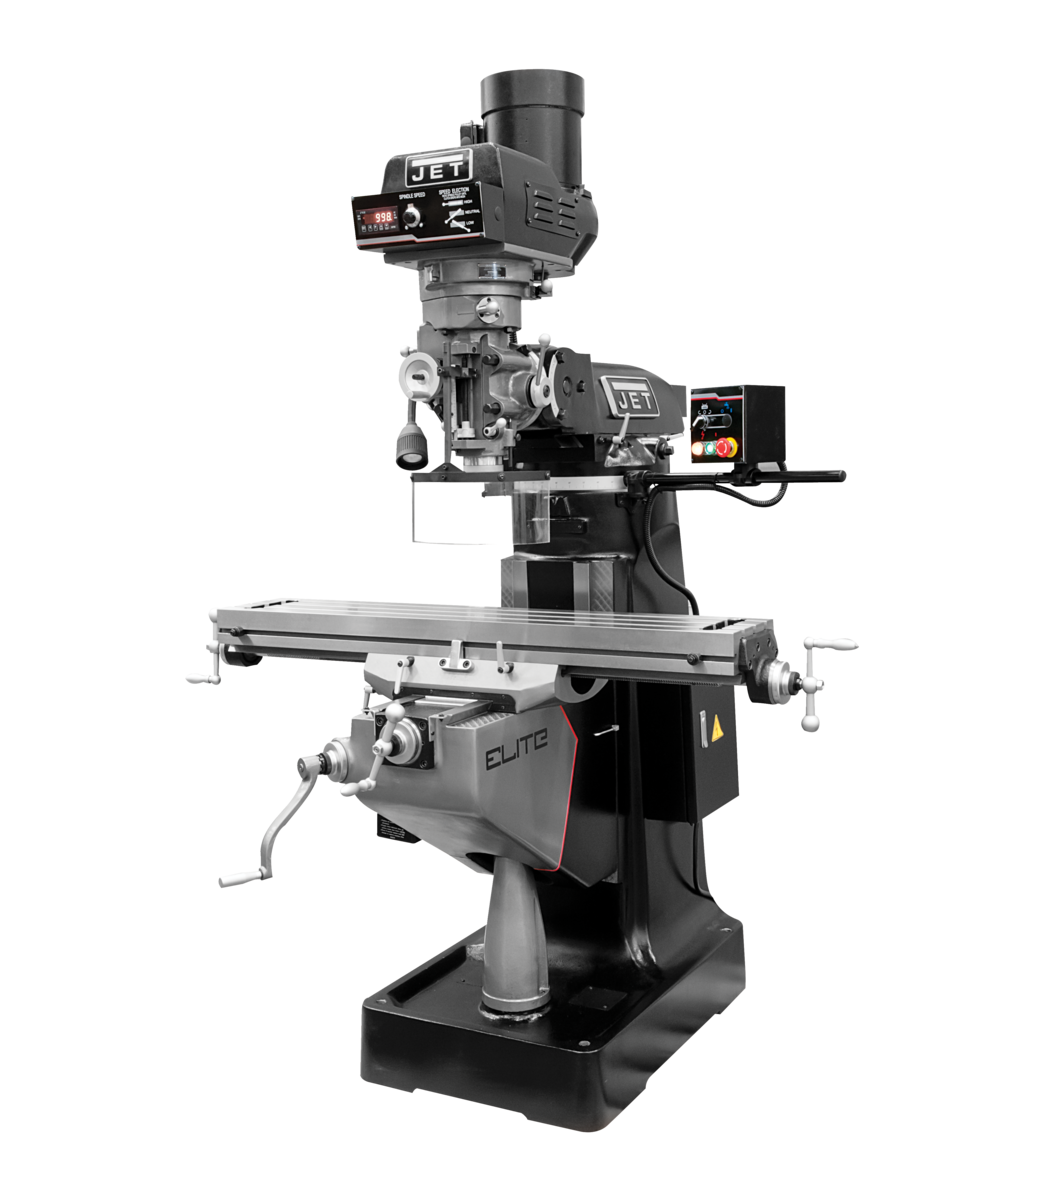 EVS-949 Mill with 2-Axis ACU-RITE 203 DRO and X-Axis JET Powerfeed and USA Made Air Draw Bar